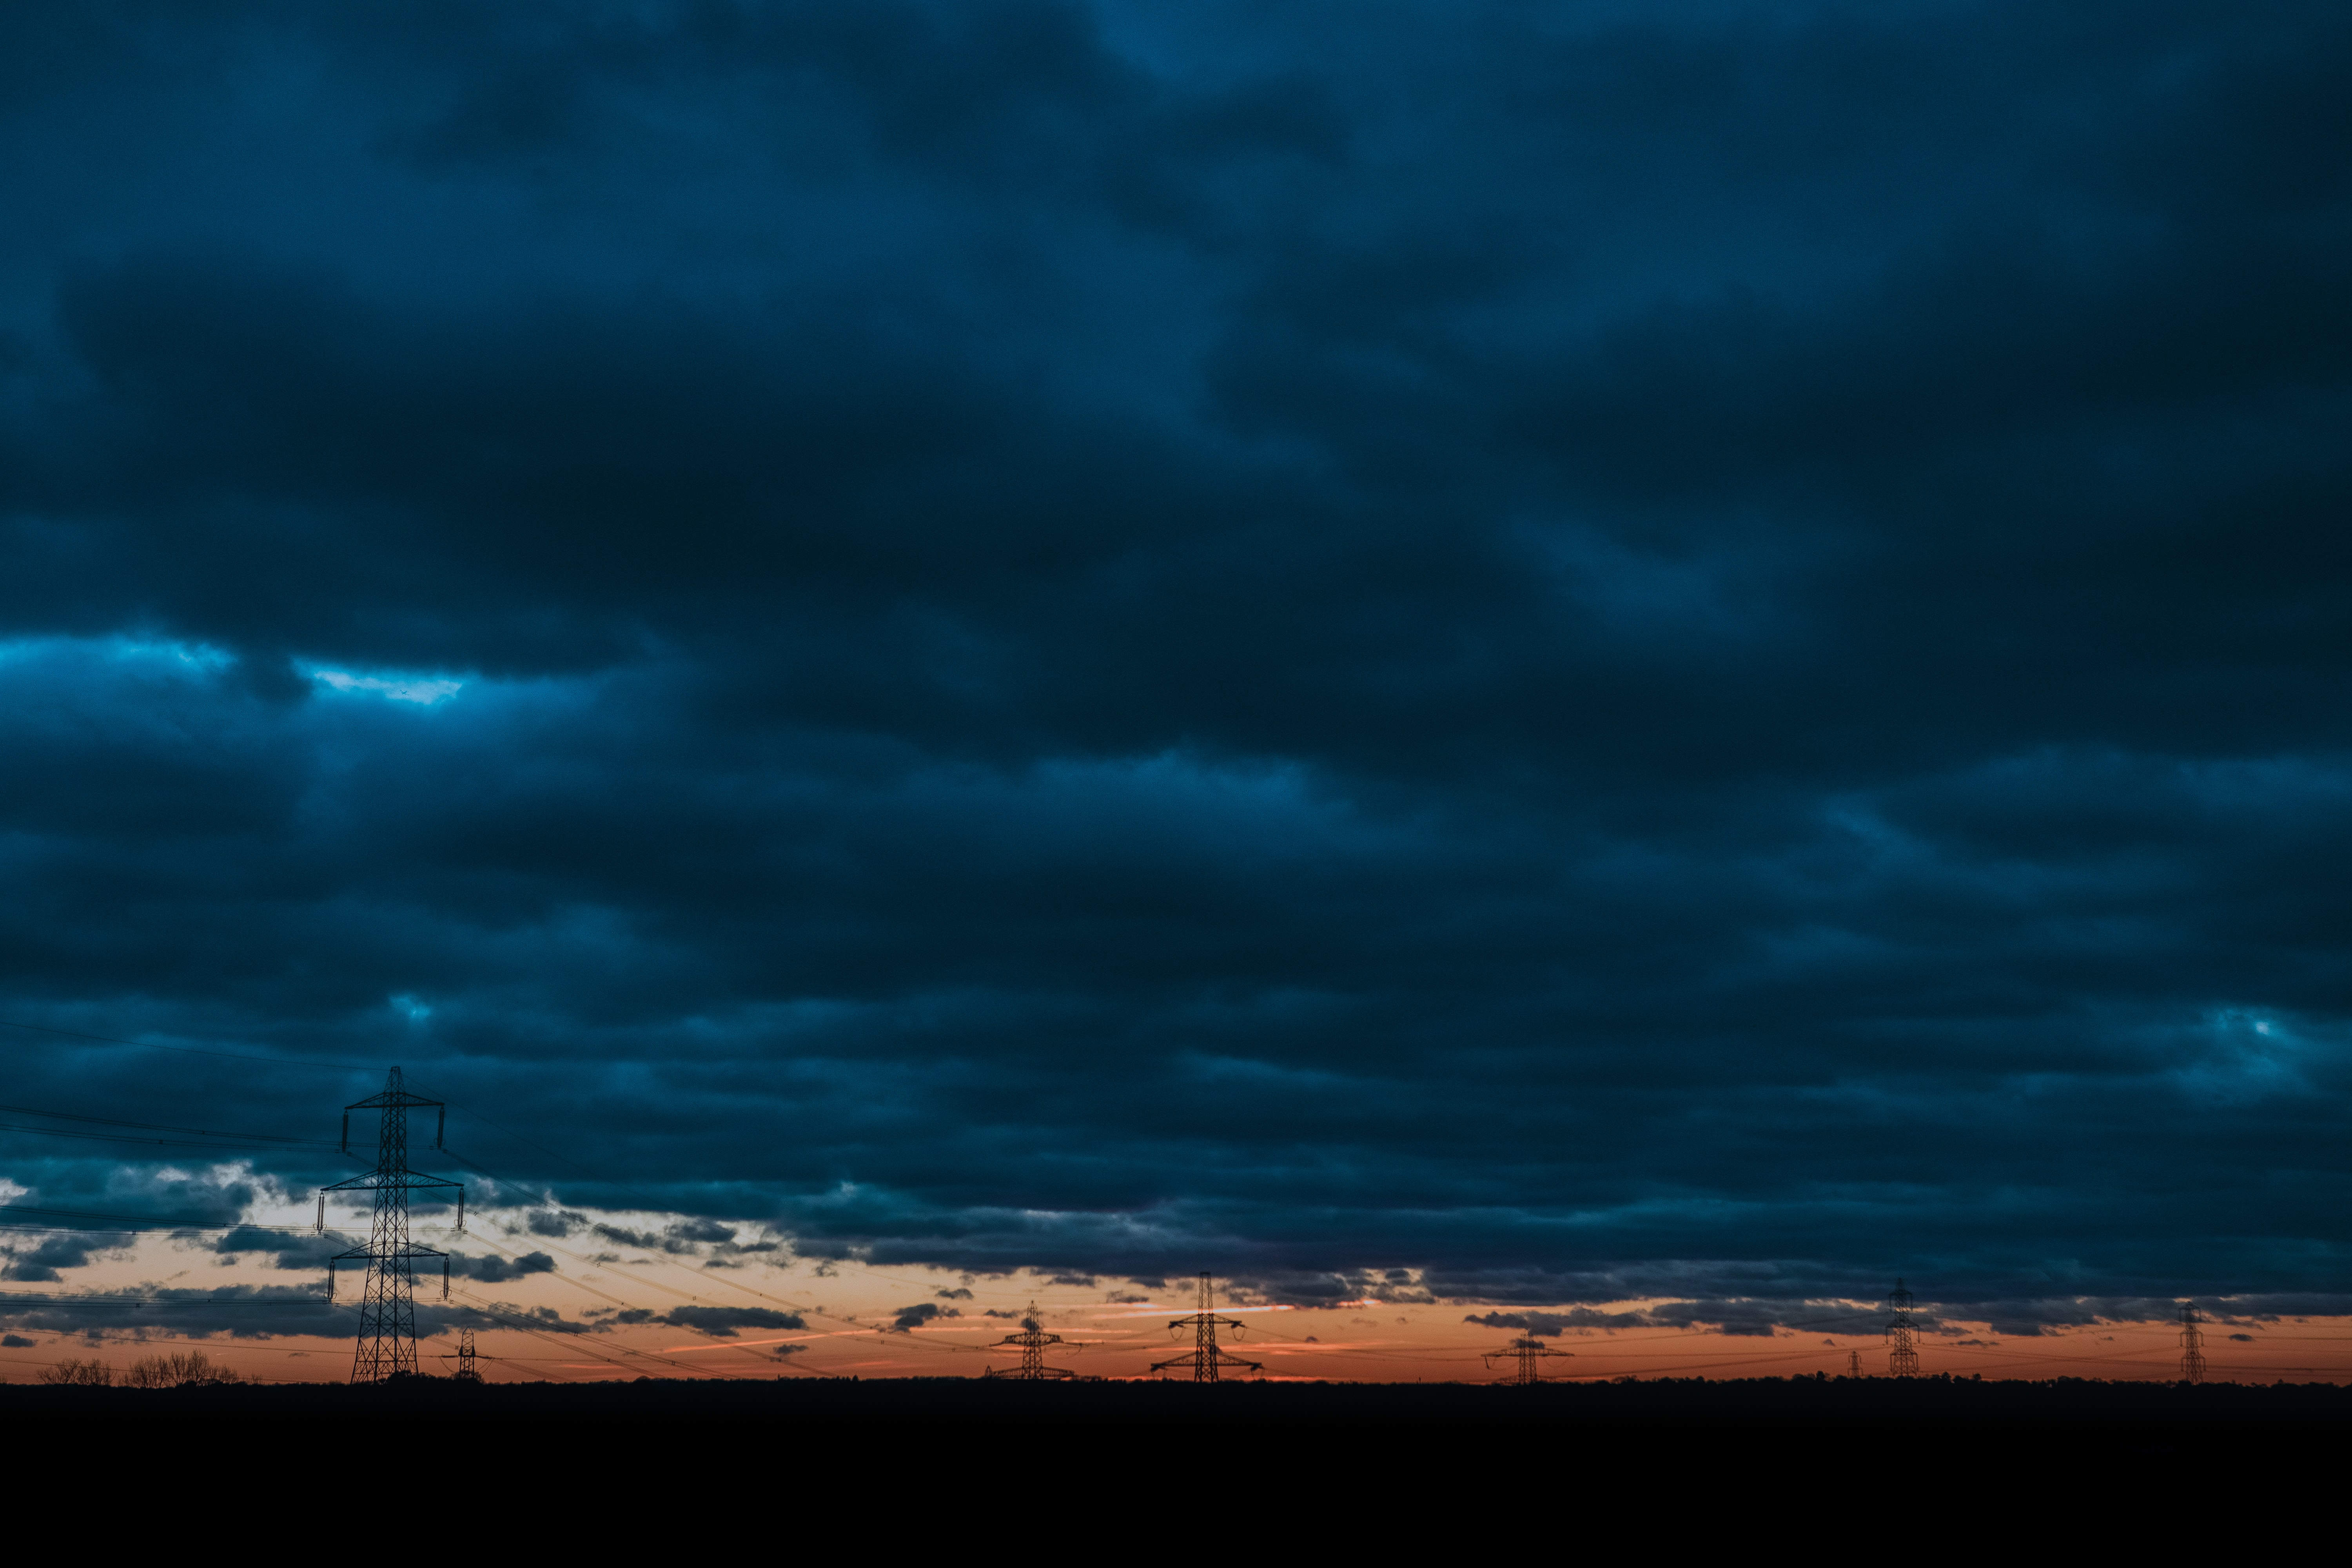 silhouette photo of transmission towers under cloudy skiy